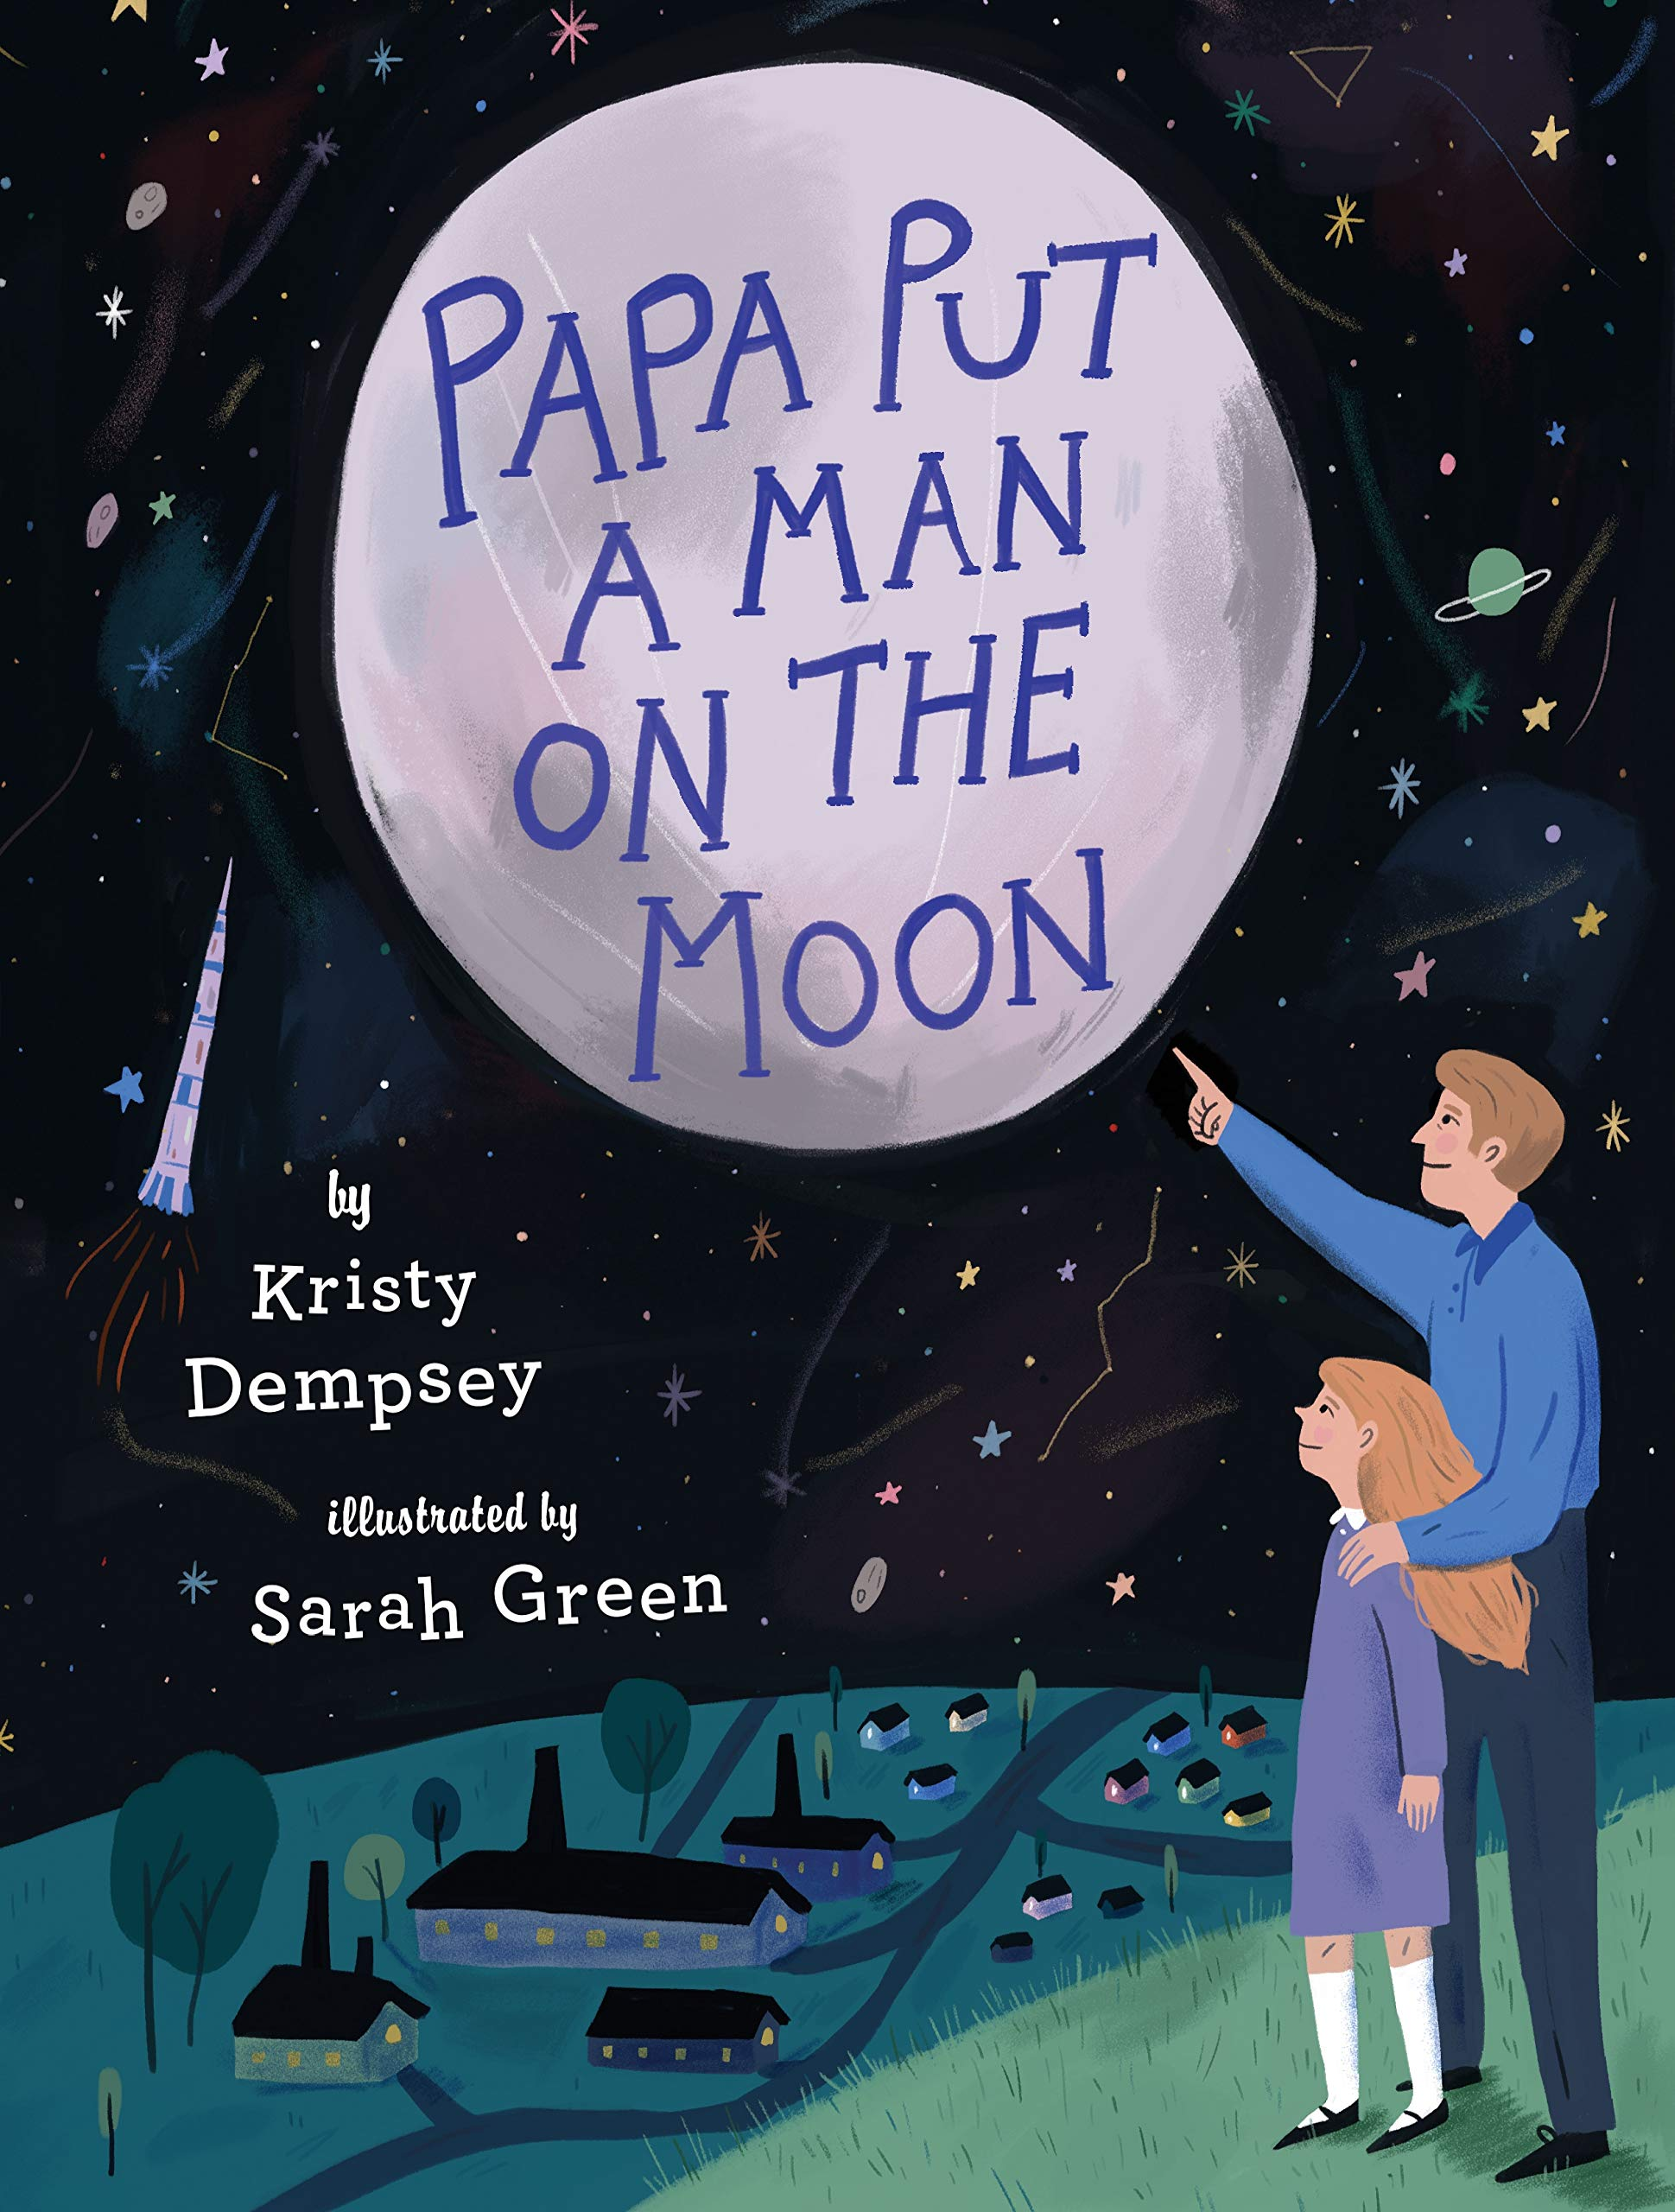 Father's Day picture books: Papa Put a Man on the Moon by Kristy Dempsey